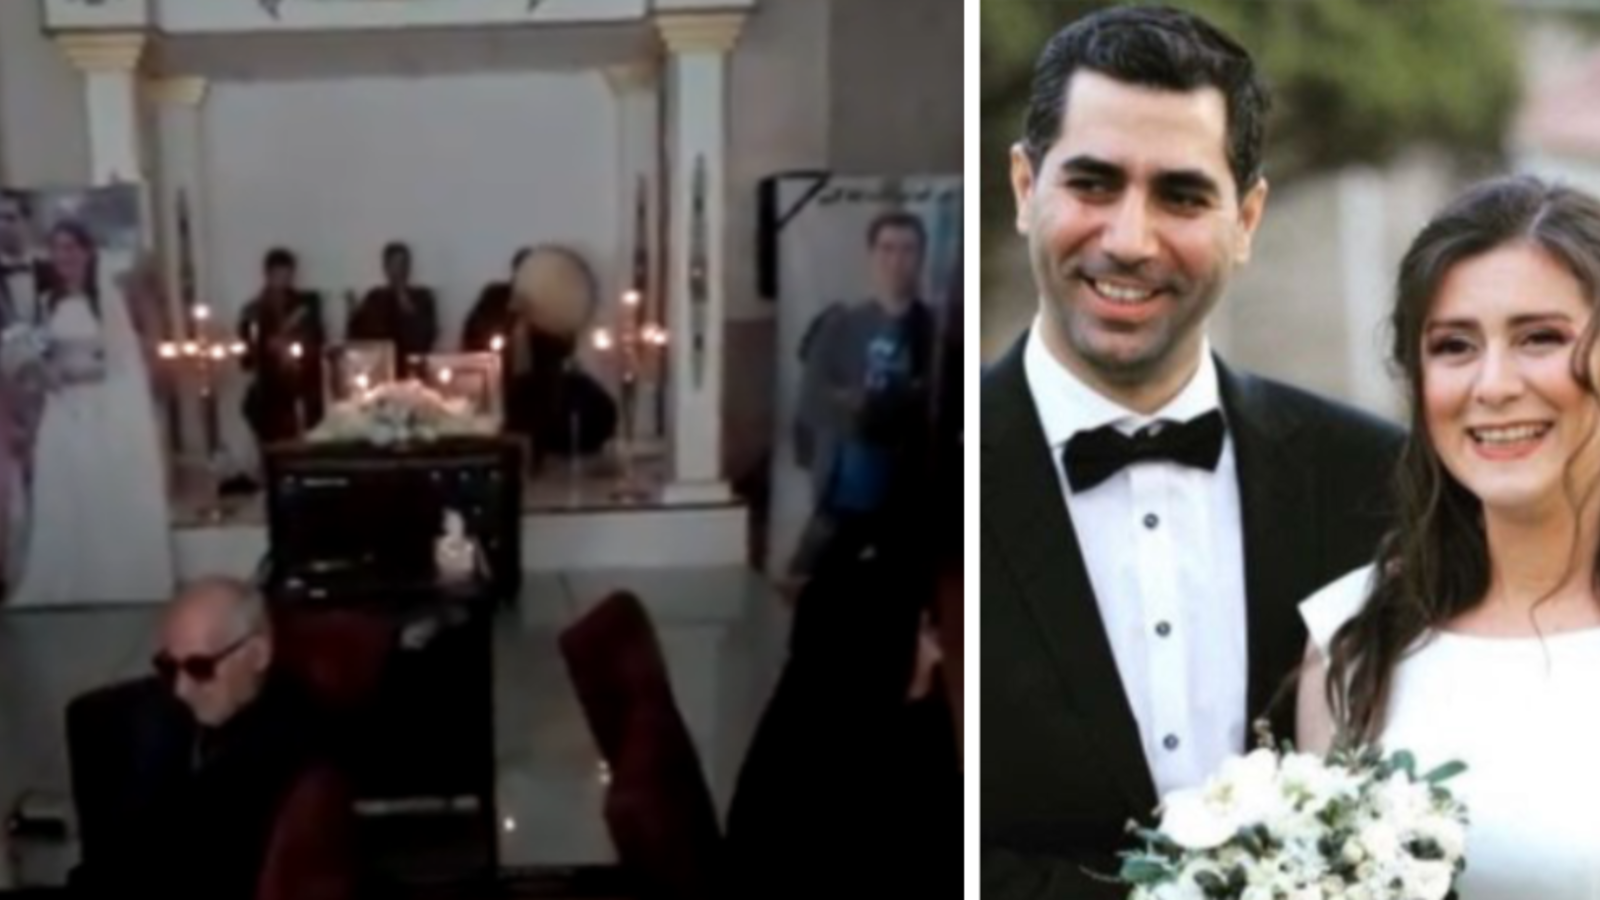 A Marriage and a Funeral: Ukrainian Plane Crash Kills Iranian Couple a Week After Their Wedding